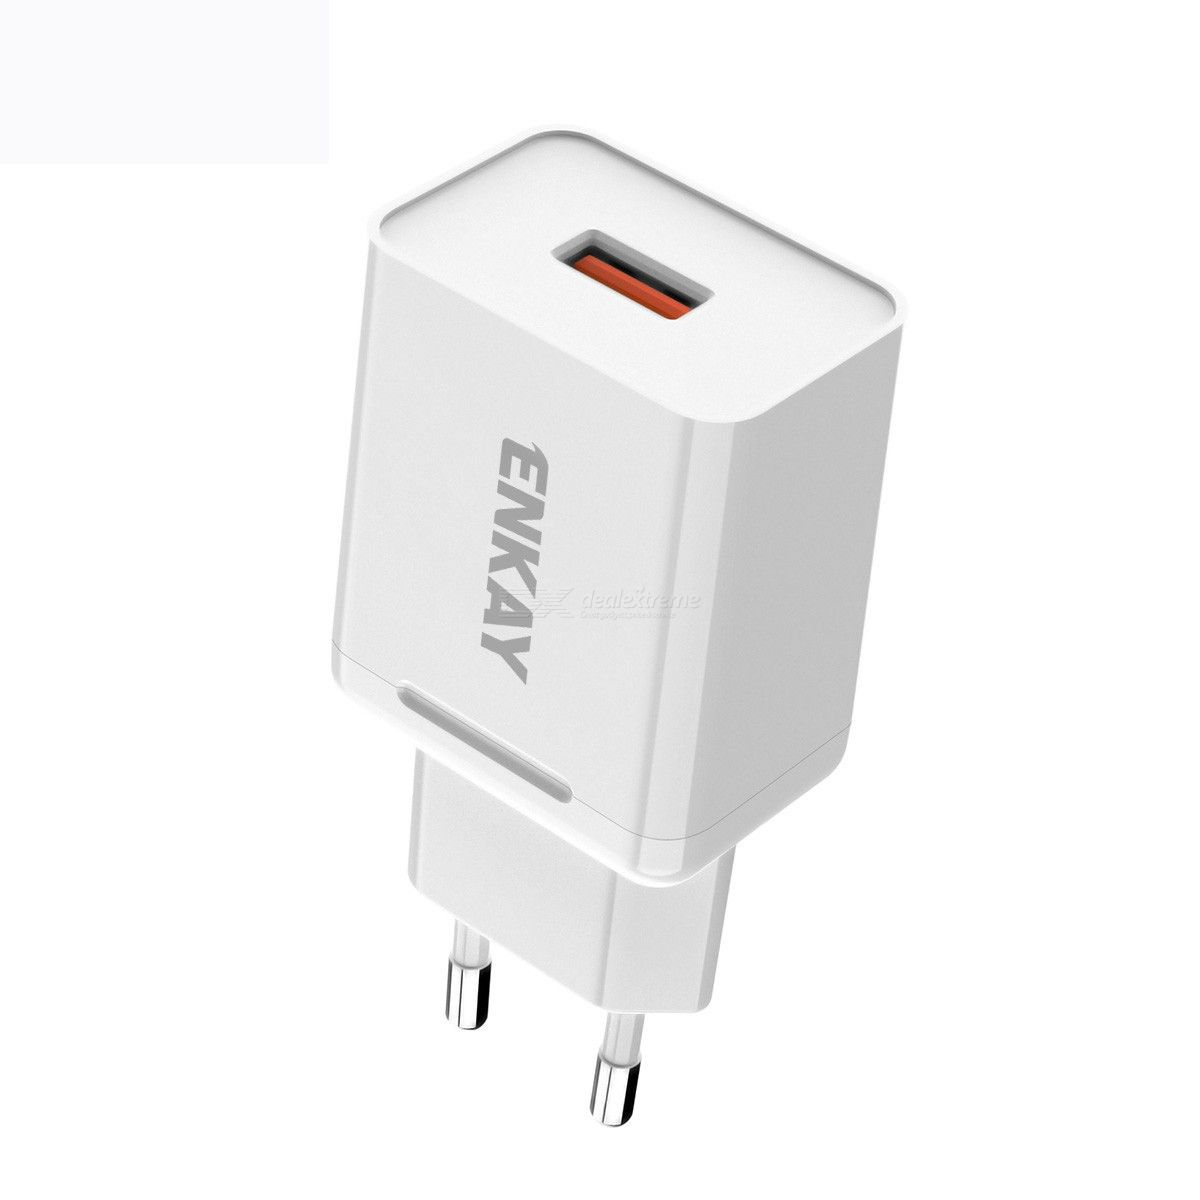 Enkay hat-prince t006-1 18w usb qc 3.0 fast charging travel charger power adapter, eu plug